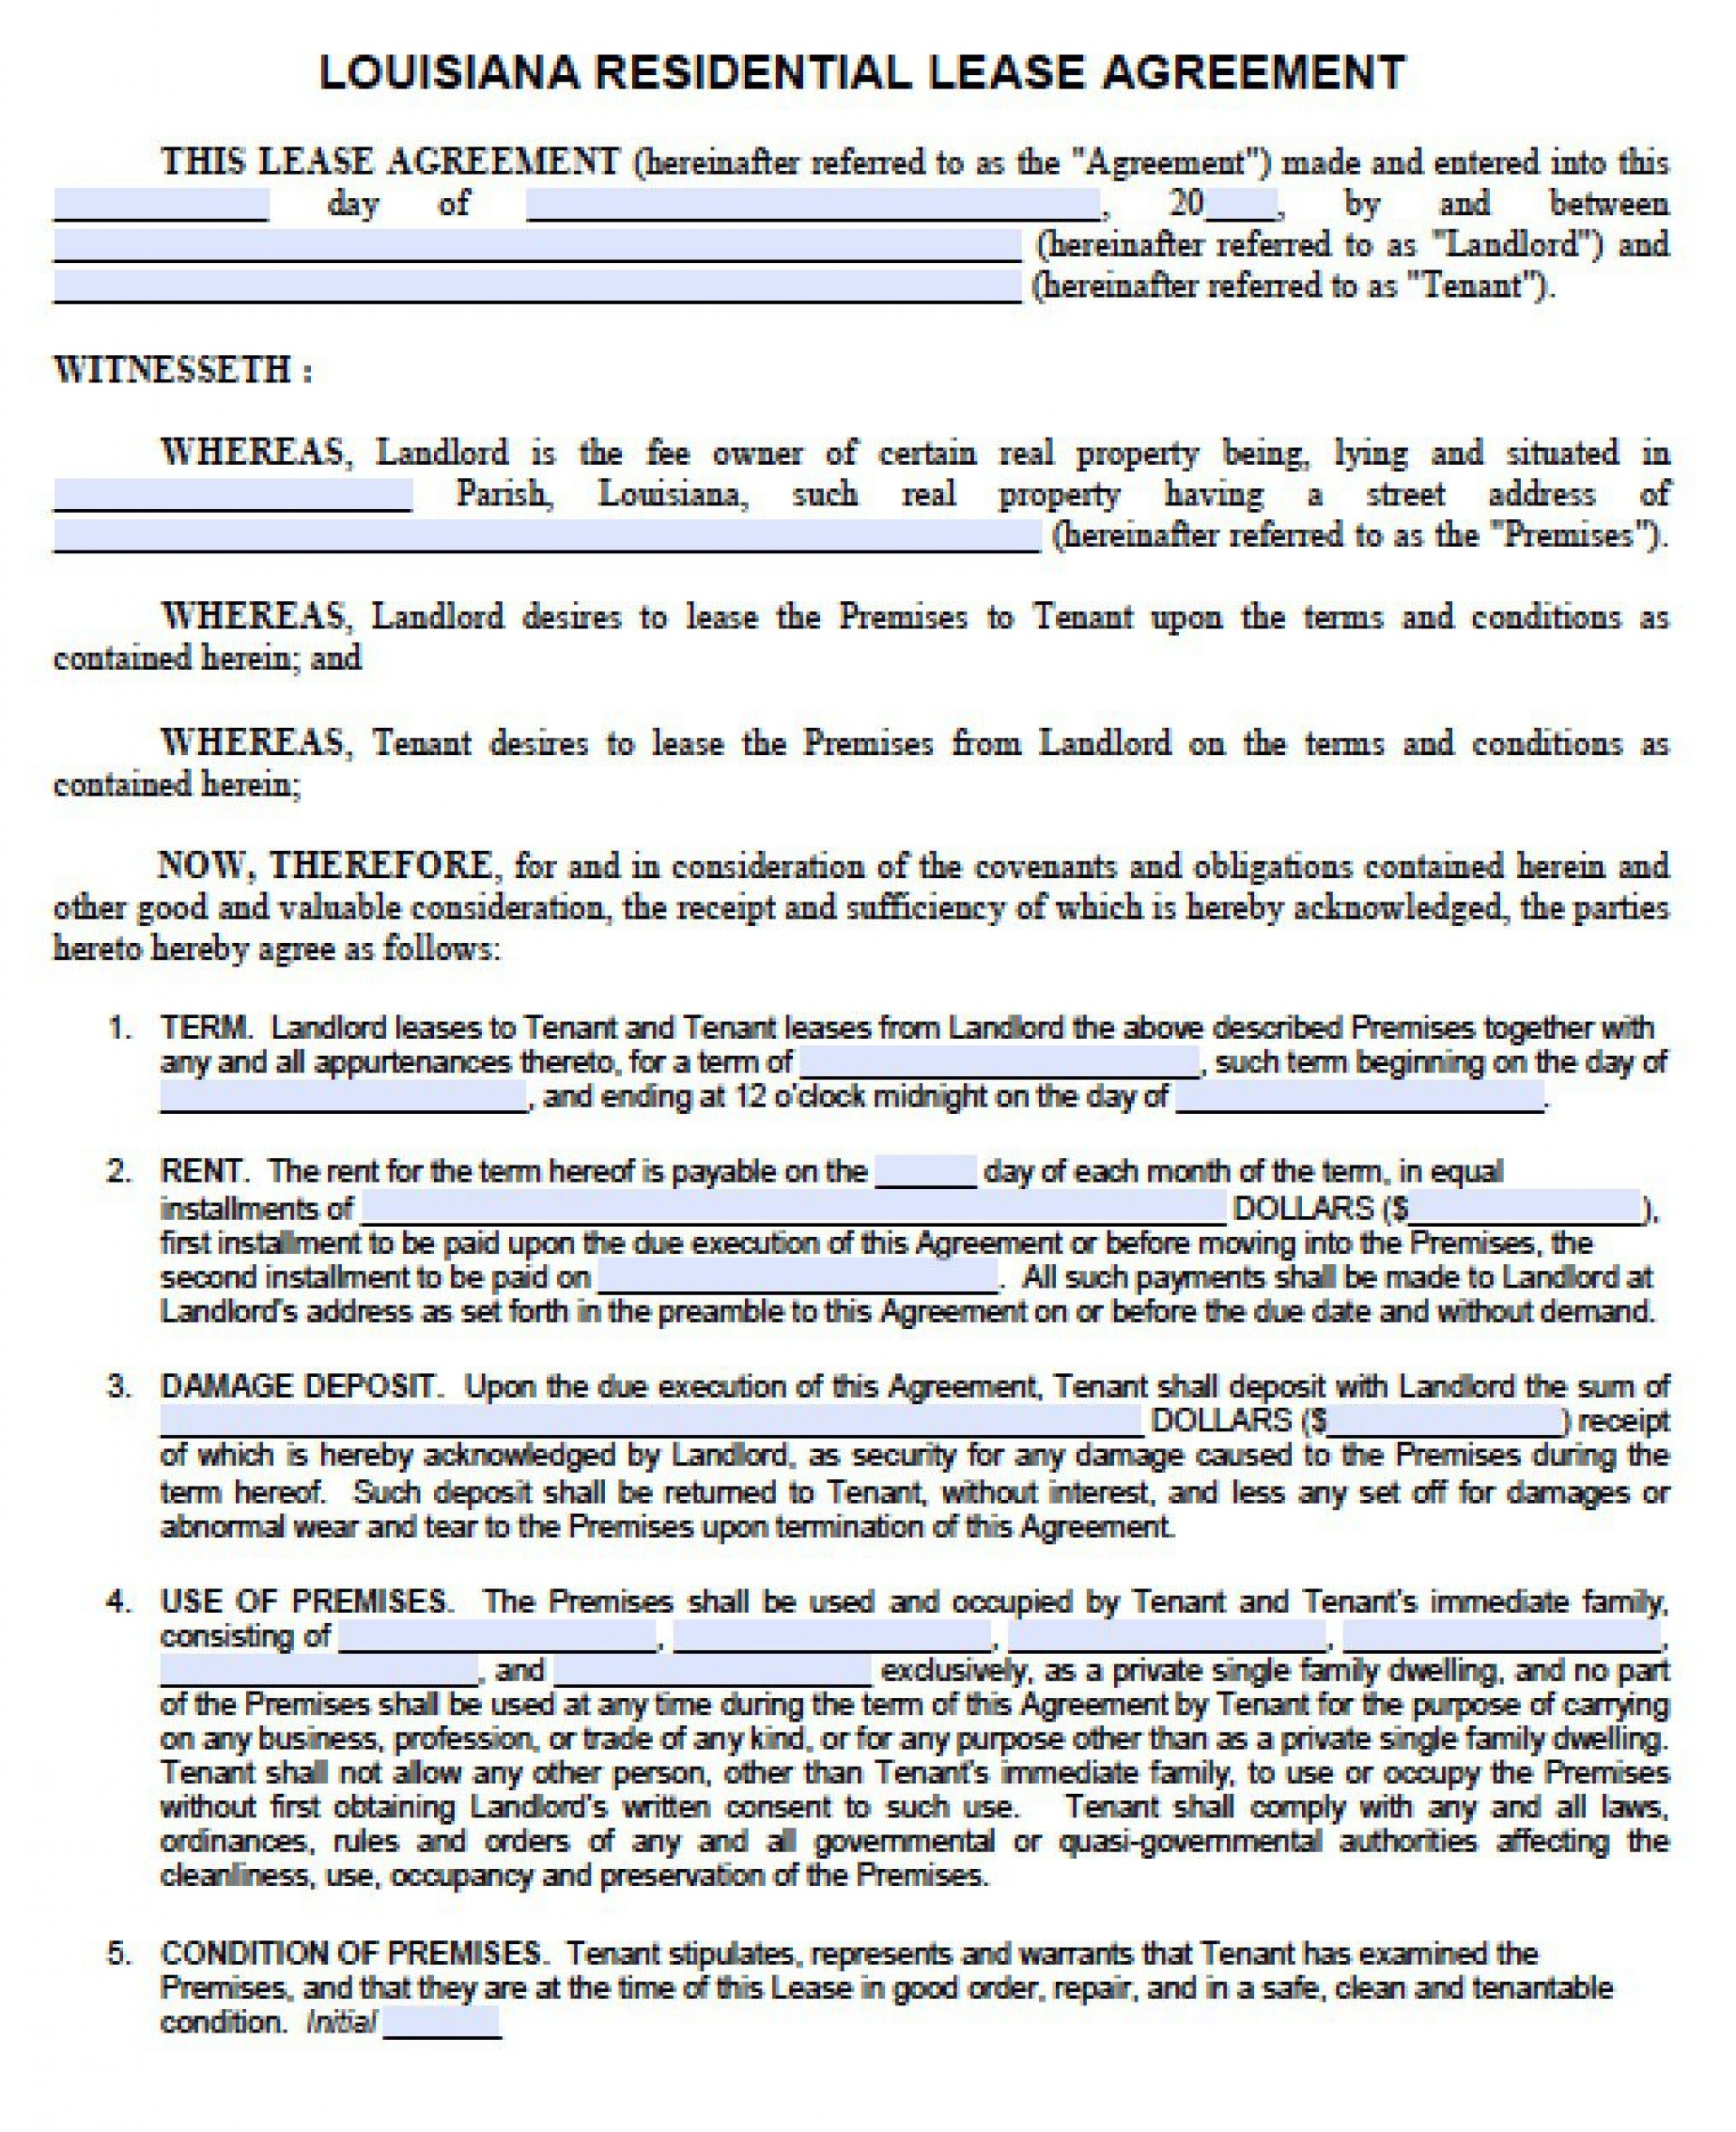 005 Shocking Rent Lease Template Free High Resolution  Room Rental Agreement Form Residential Pdf Download1920